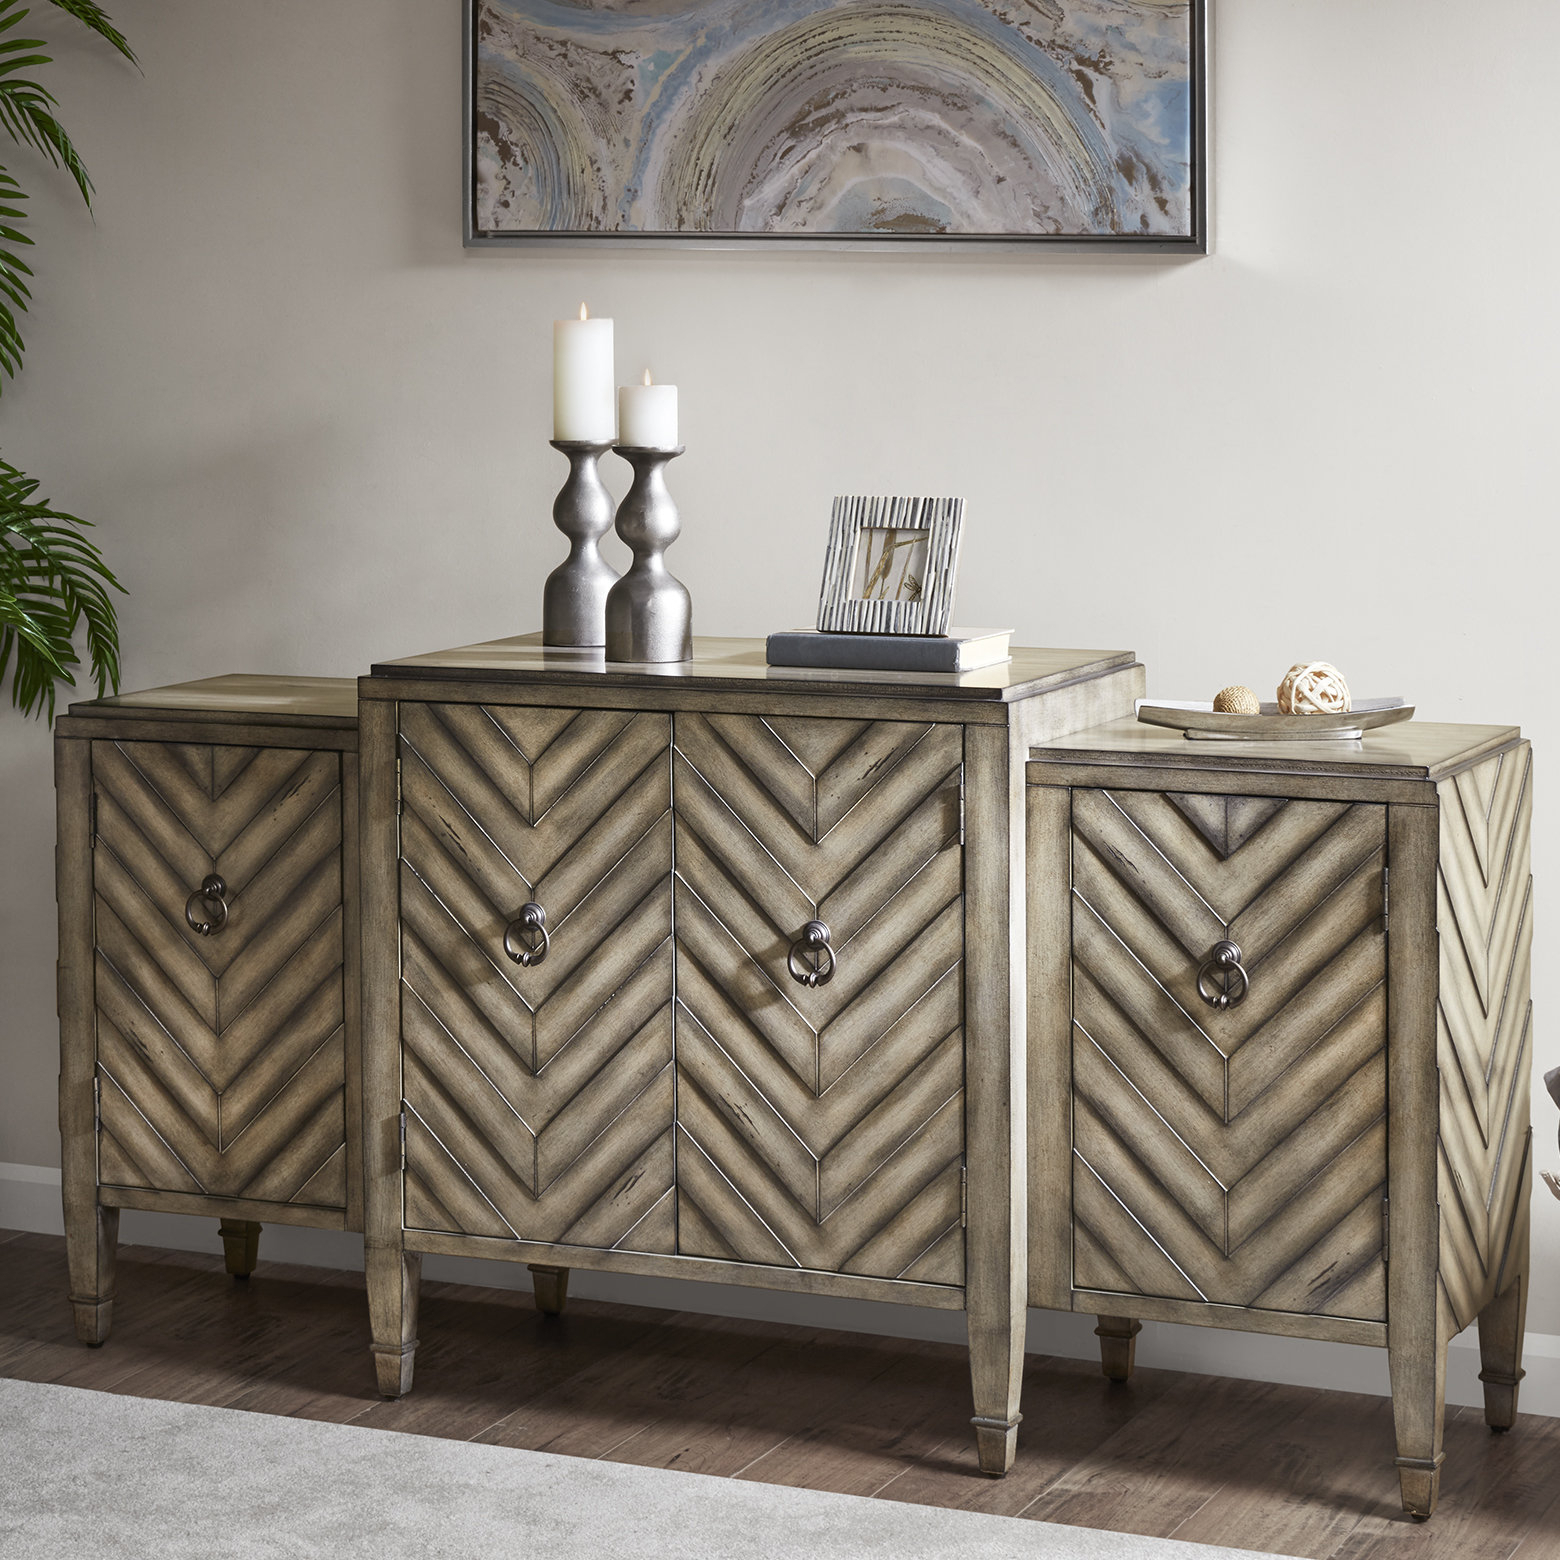 Farmhouse & Rustic Bungalow Rose Sideboards & Buffets Within Steinhatchee Reclaimed Pine 4 Door Sideboards (View 16 of 30)